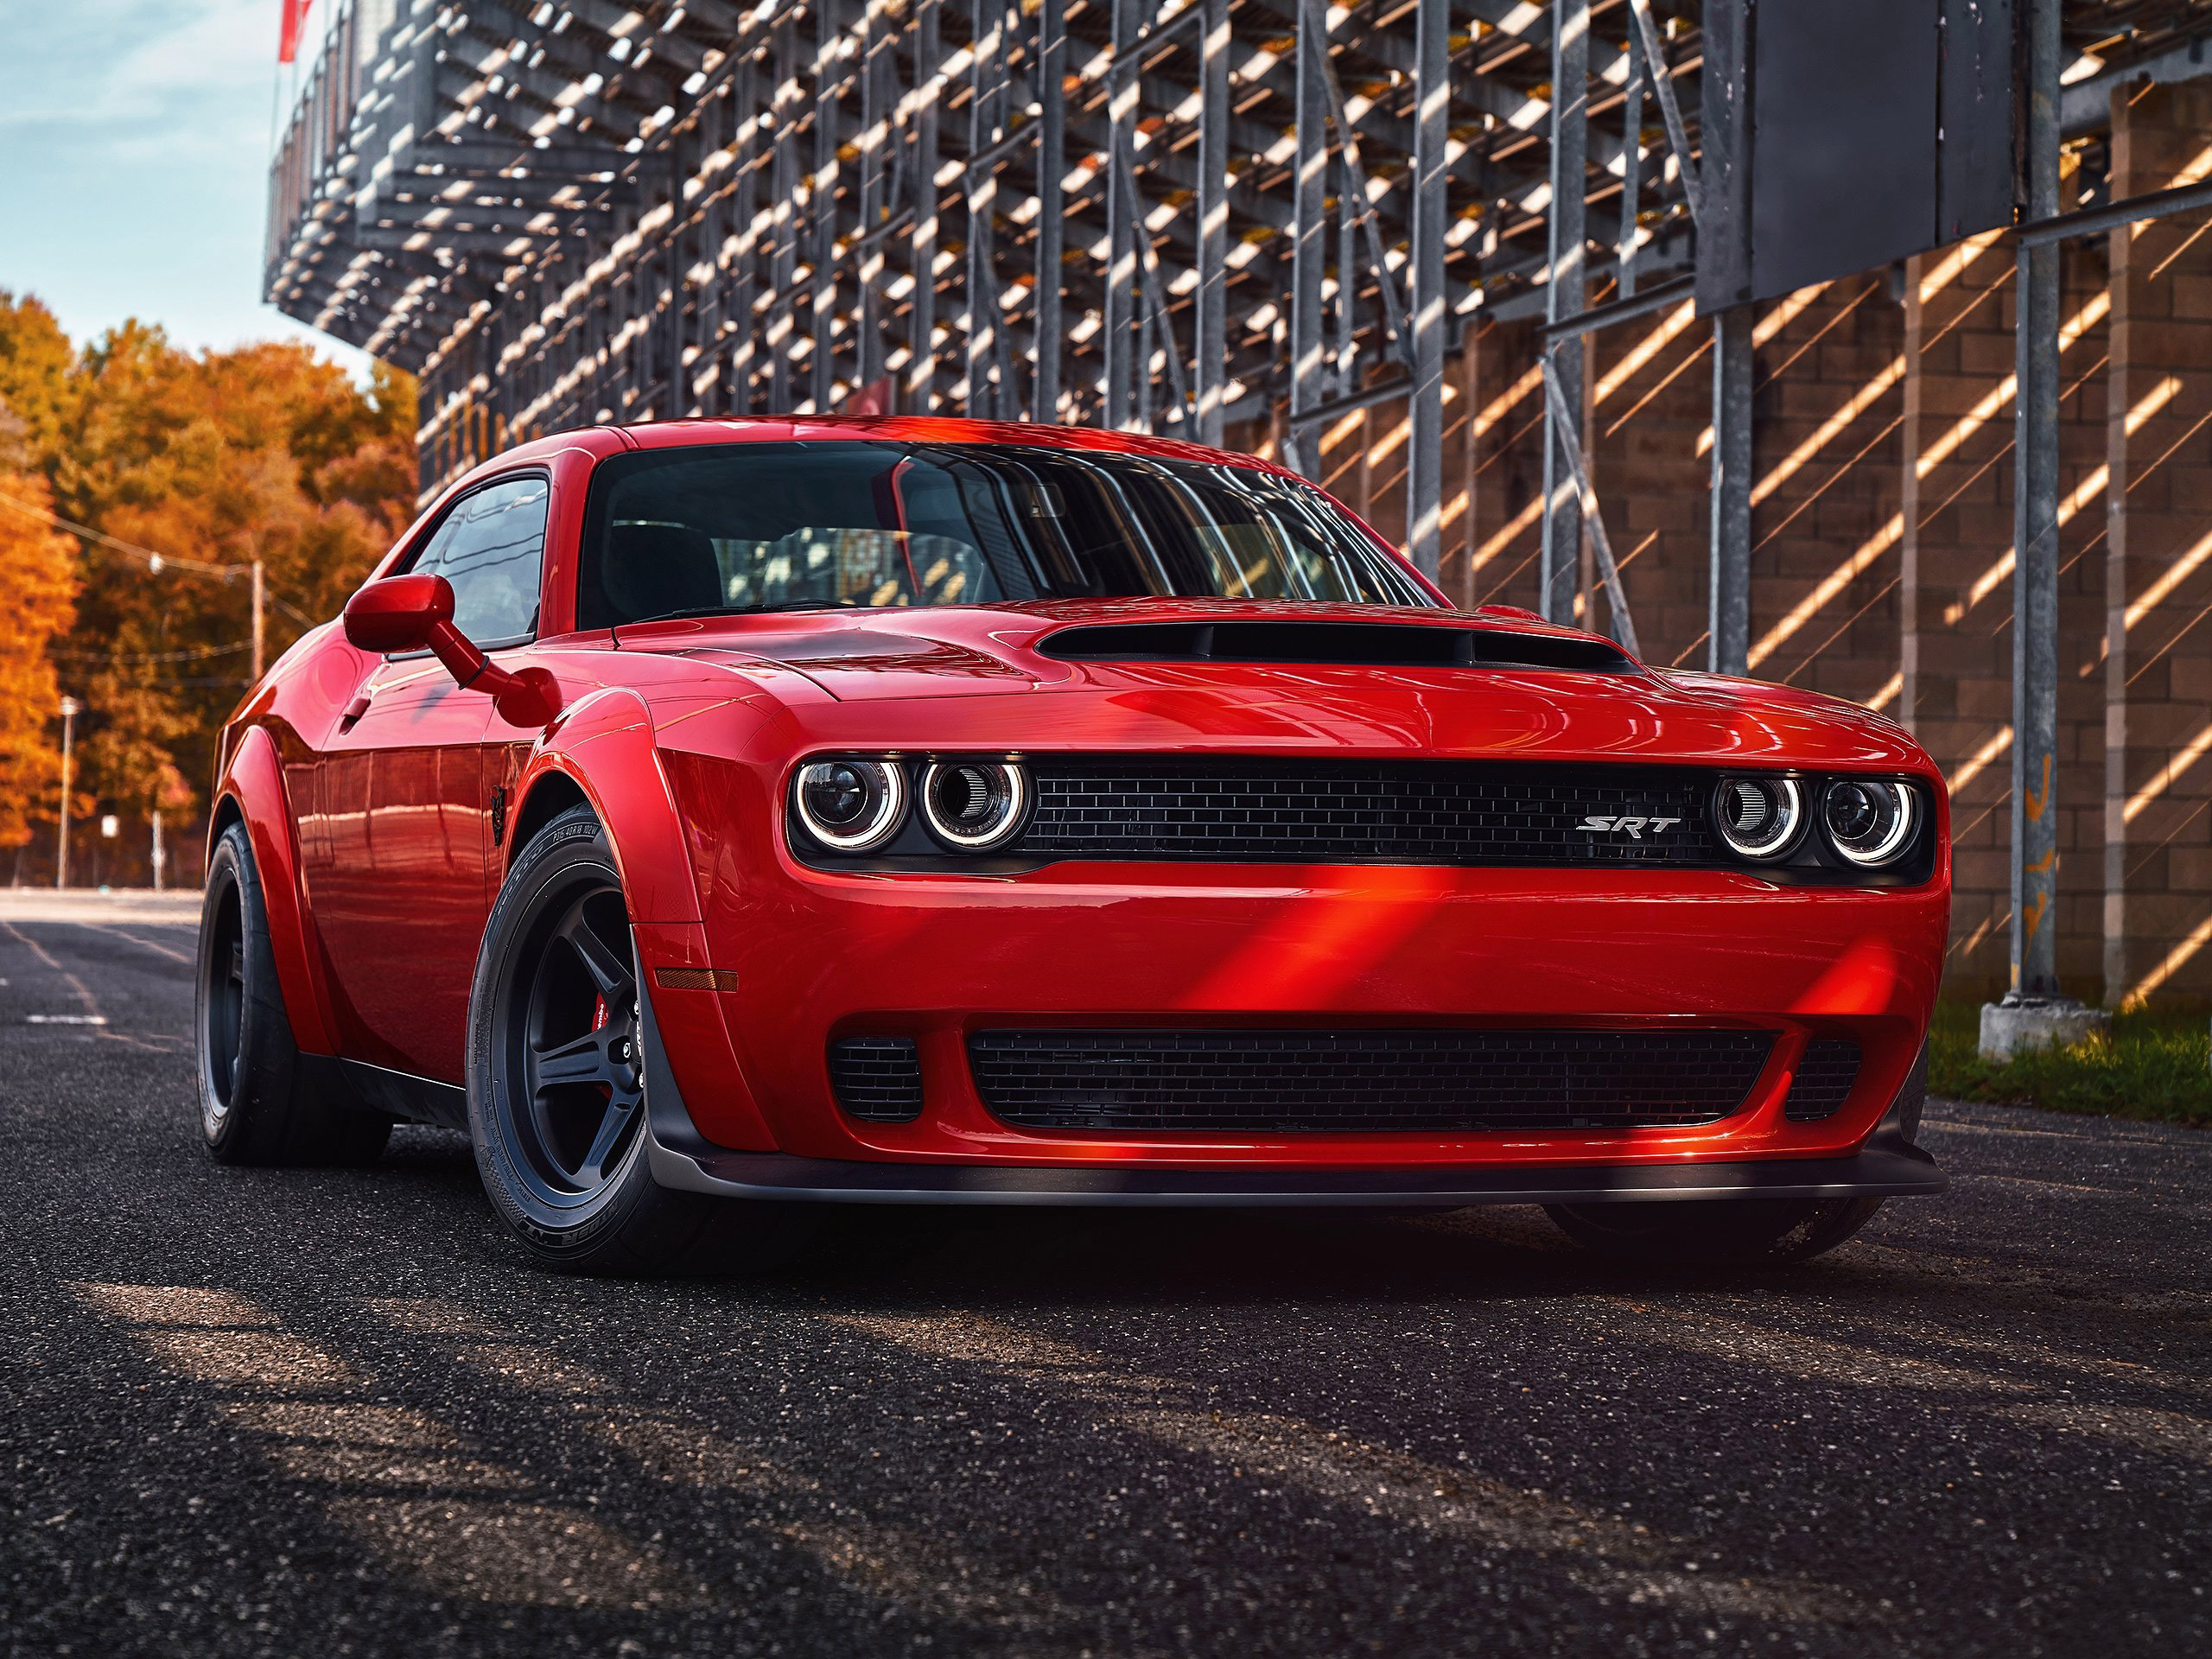 2018 Dodge Challenger Srt Demon Hd Cars 4k Wallpapers Images Backgrounds Photos And Pictures